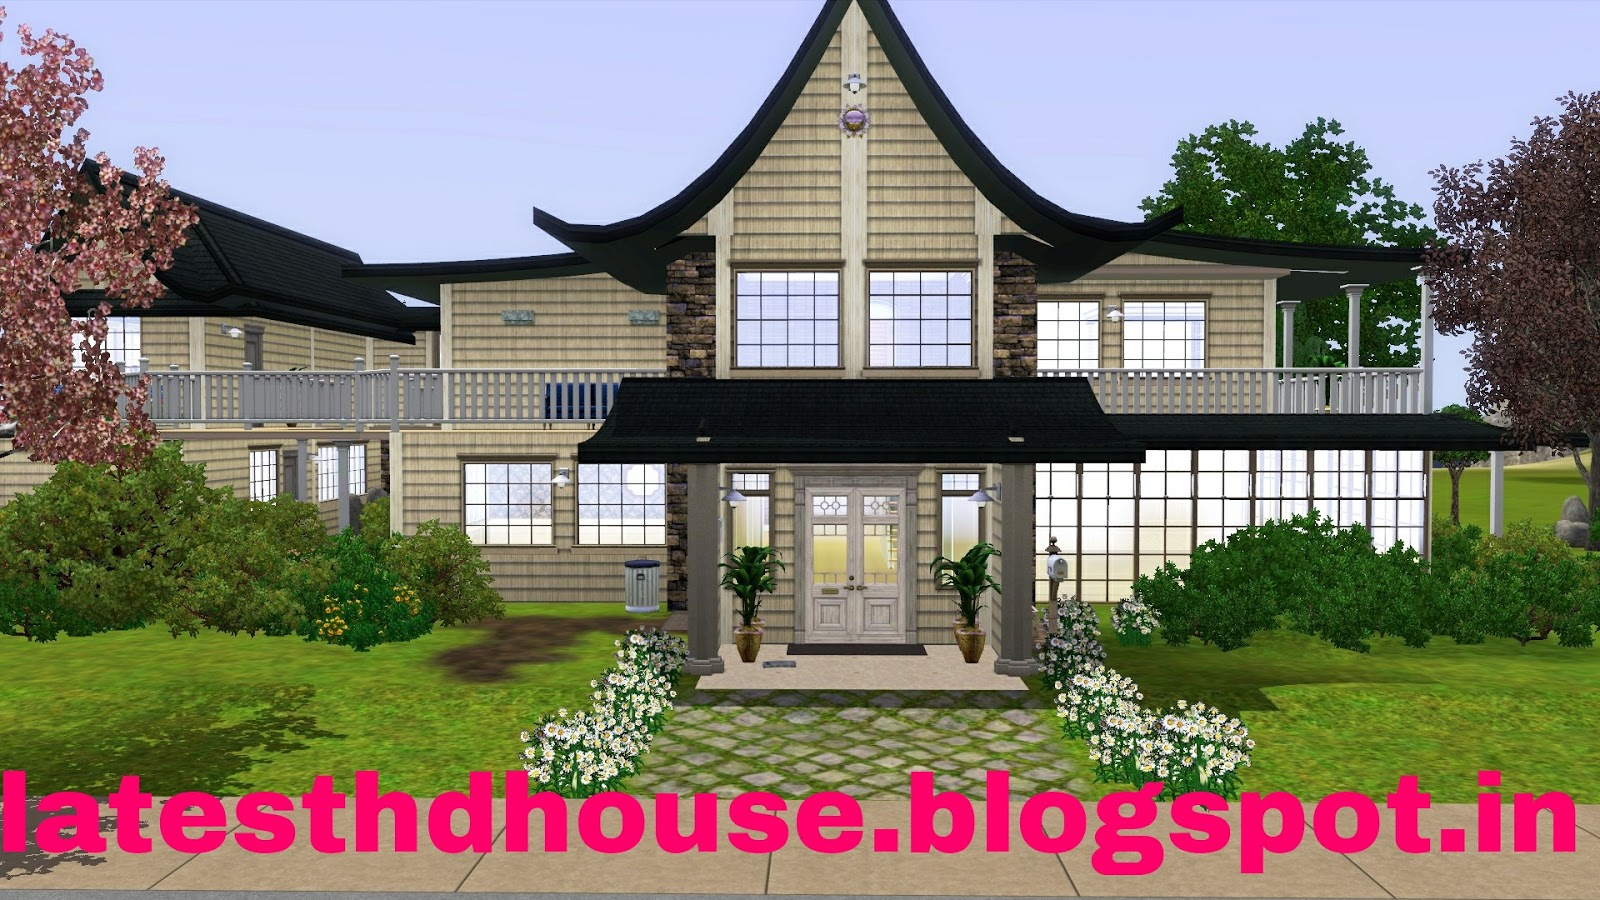 All hd wallpaper house full hd wallpaper new for Wallpaper with houses on